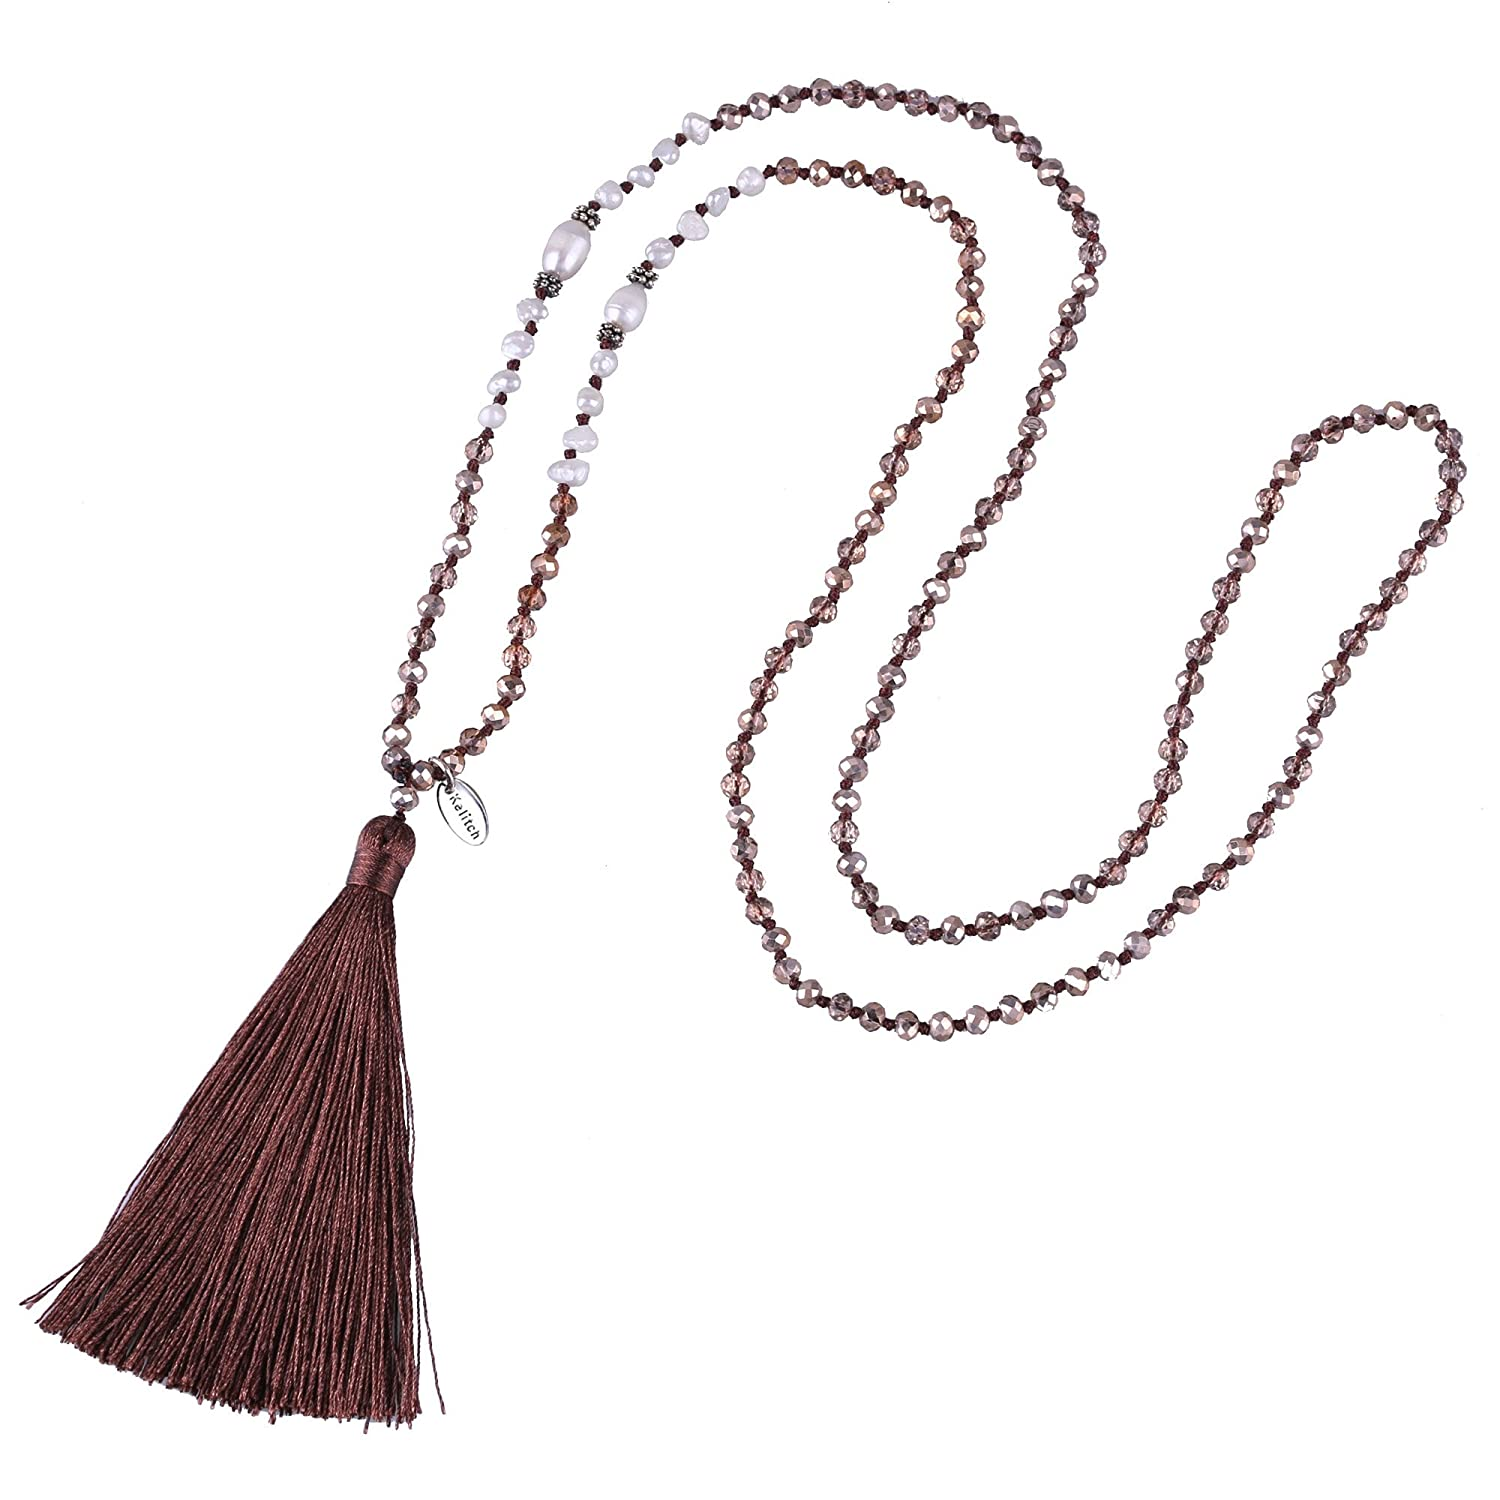 KELITCH Long Tassel Necklace Handmade Shell Pearl Crystal Beads Necklace for Women Fashion Jewelry Deep Brown Kelitch Jewelry UAMN0240E